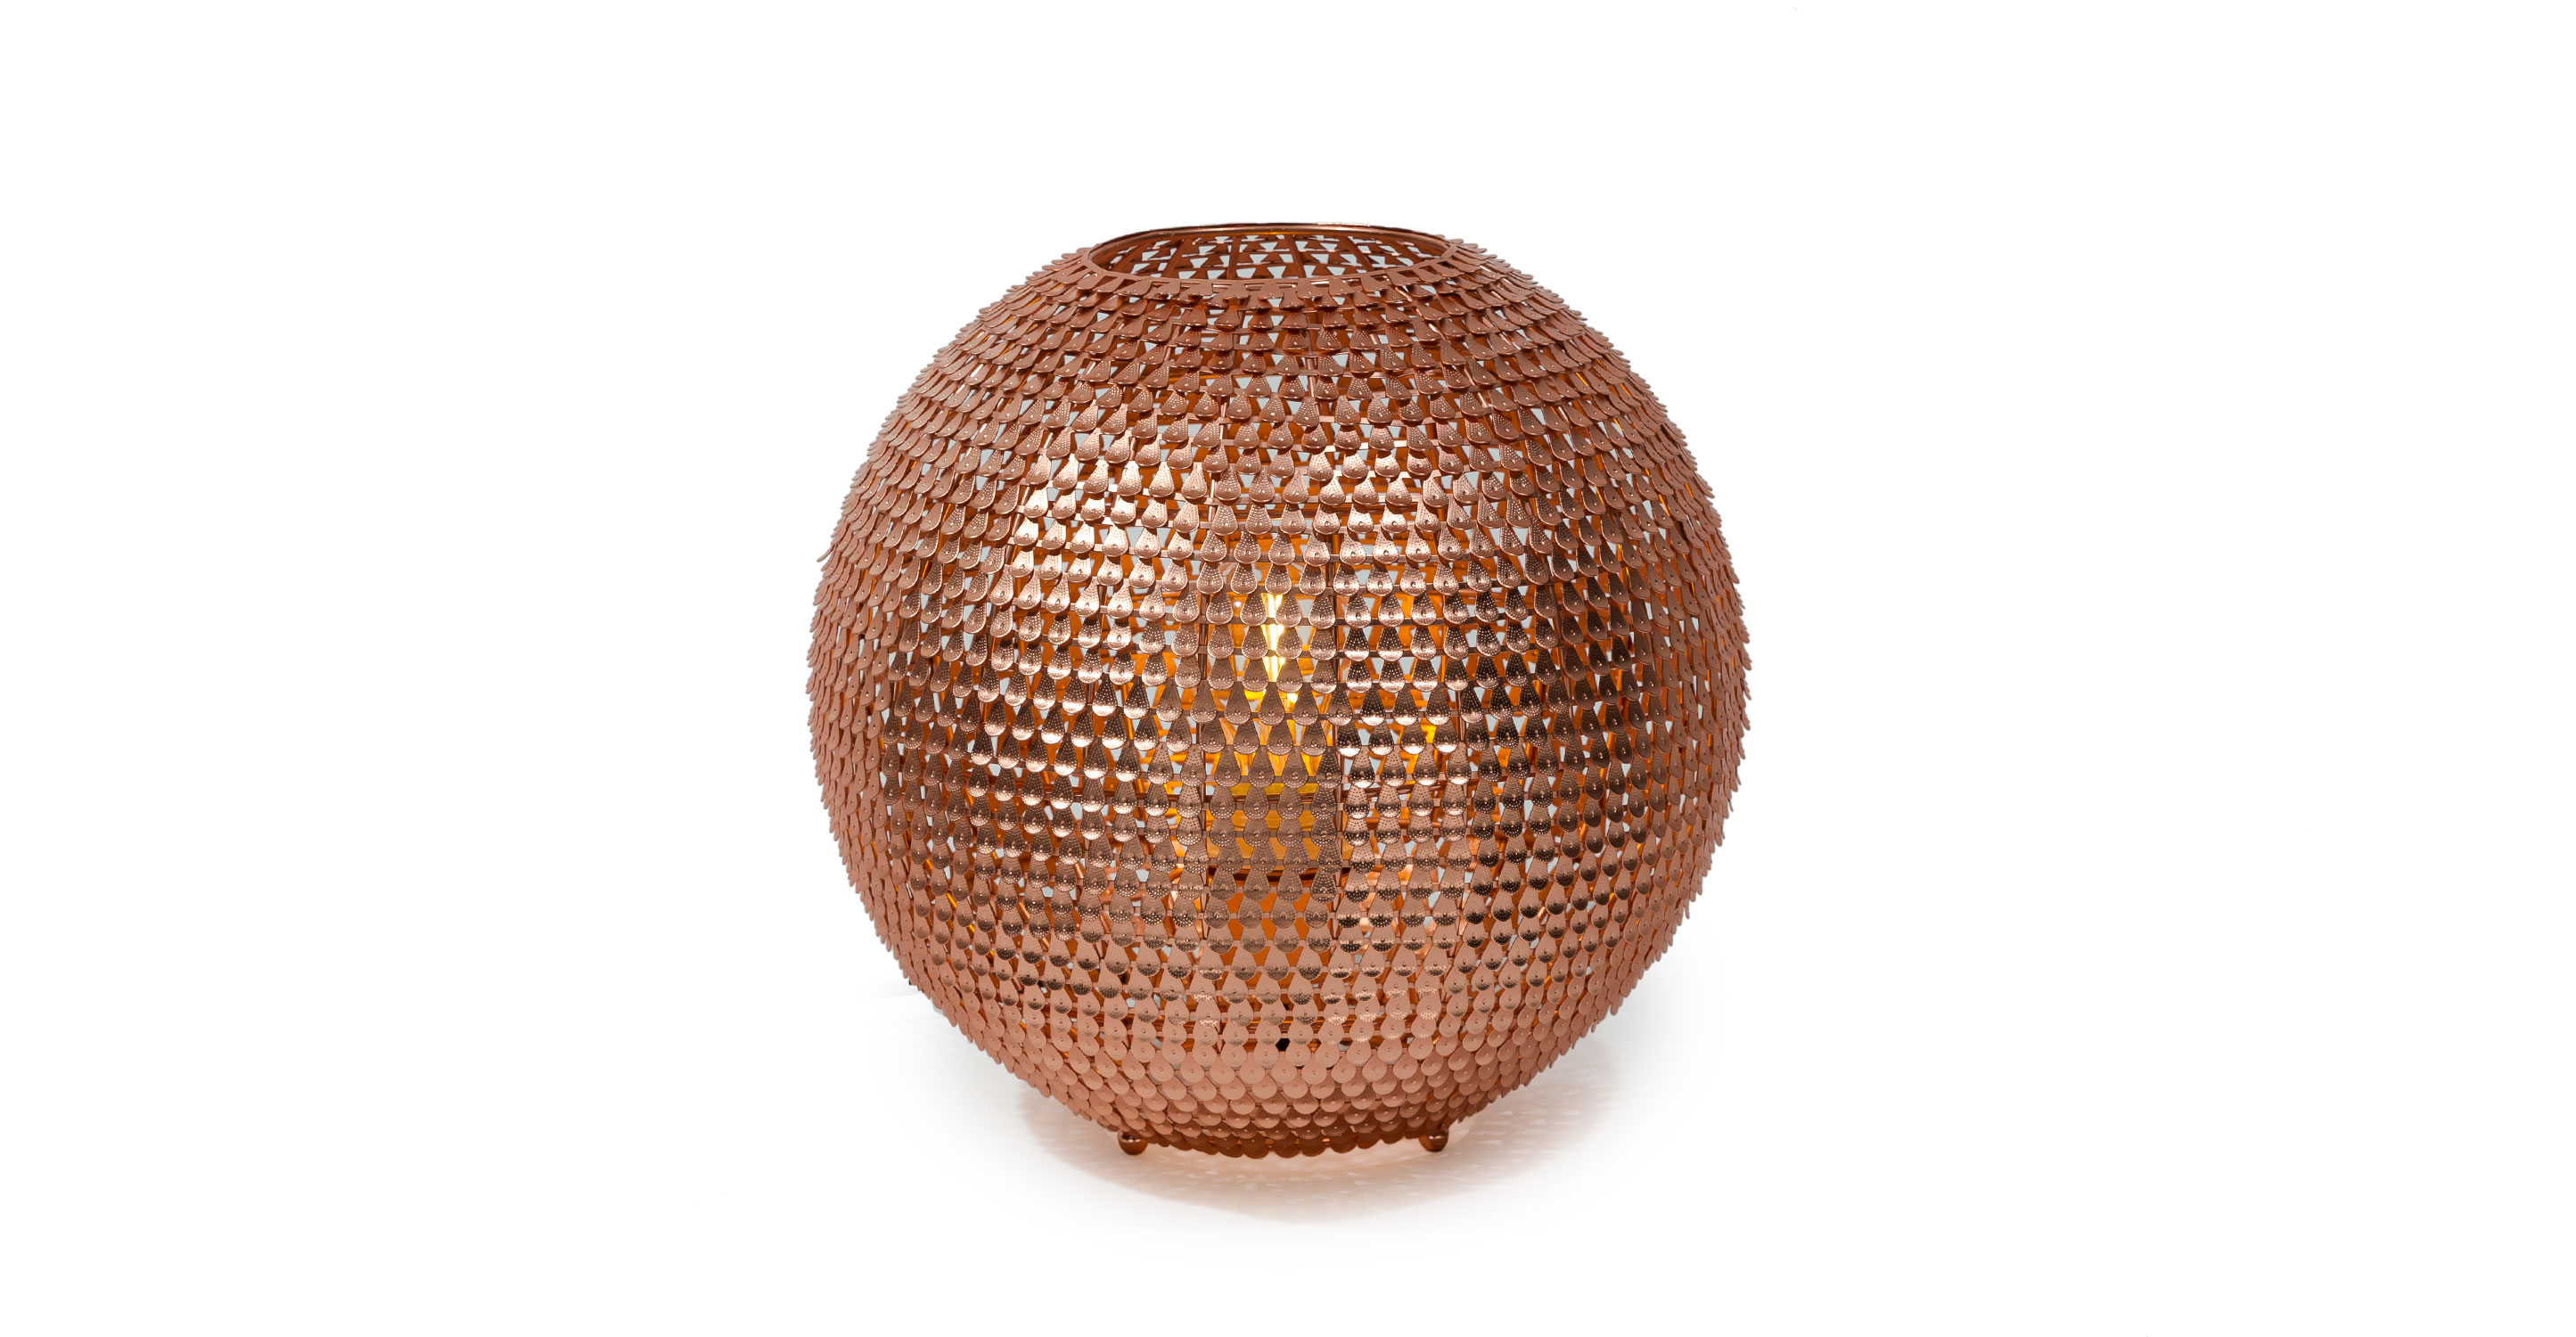 Baskets article modern mid century and scandinavian furniture - Ceto Copper Table Lamp Lighting Article Modern Mid